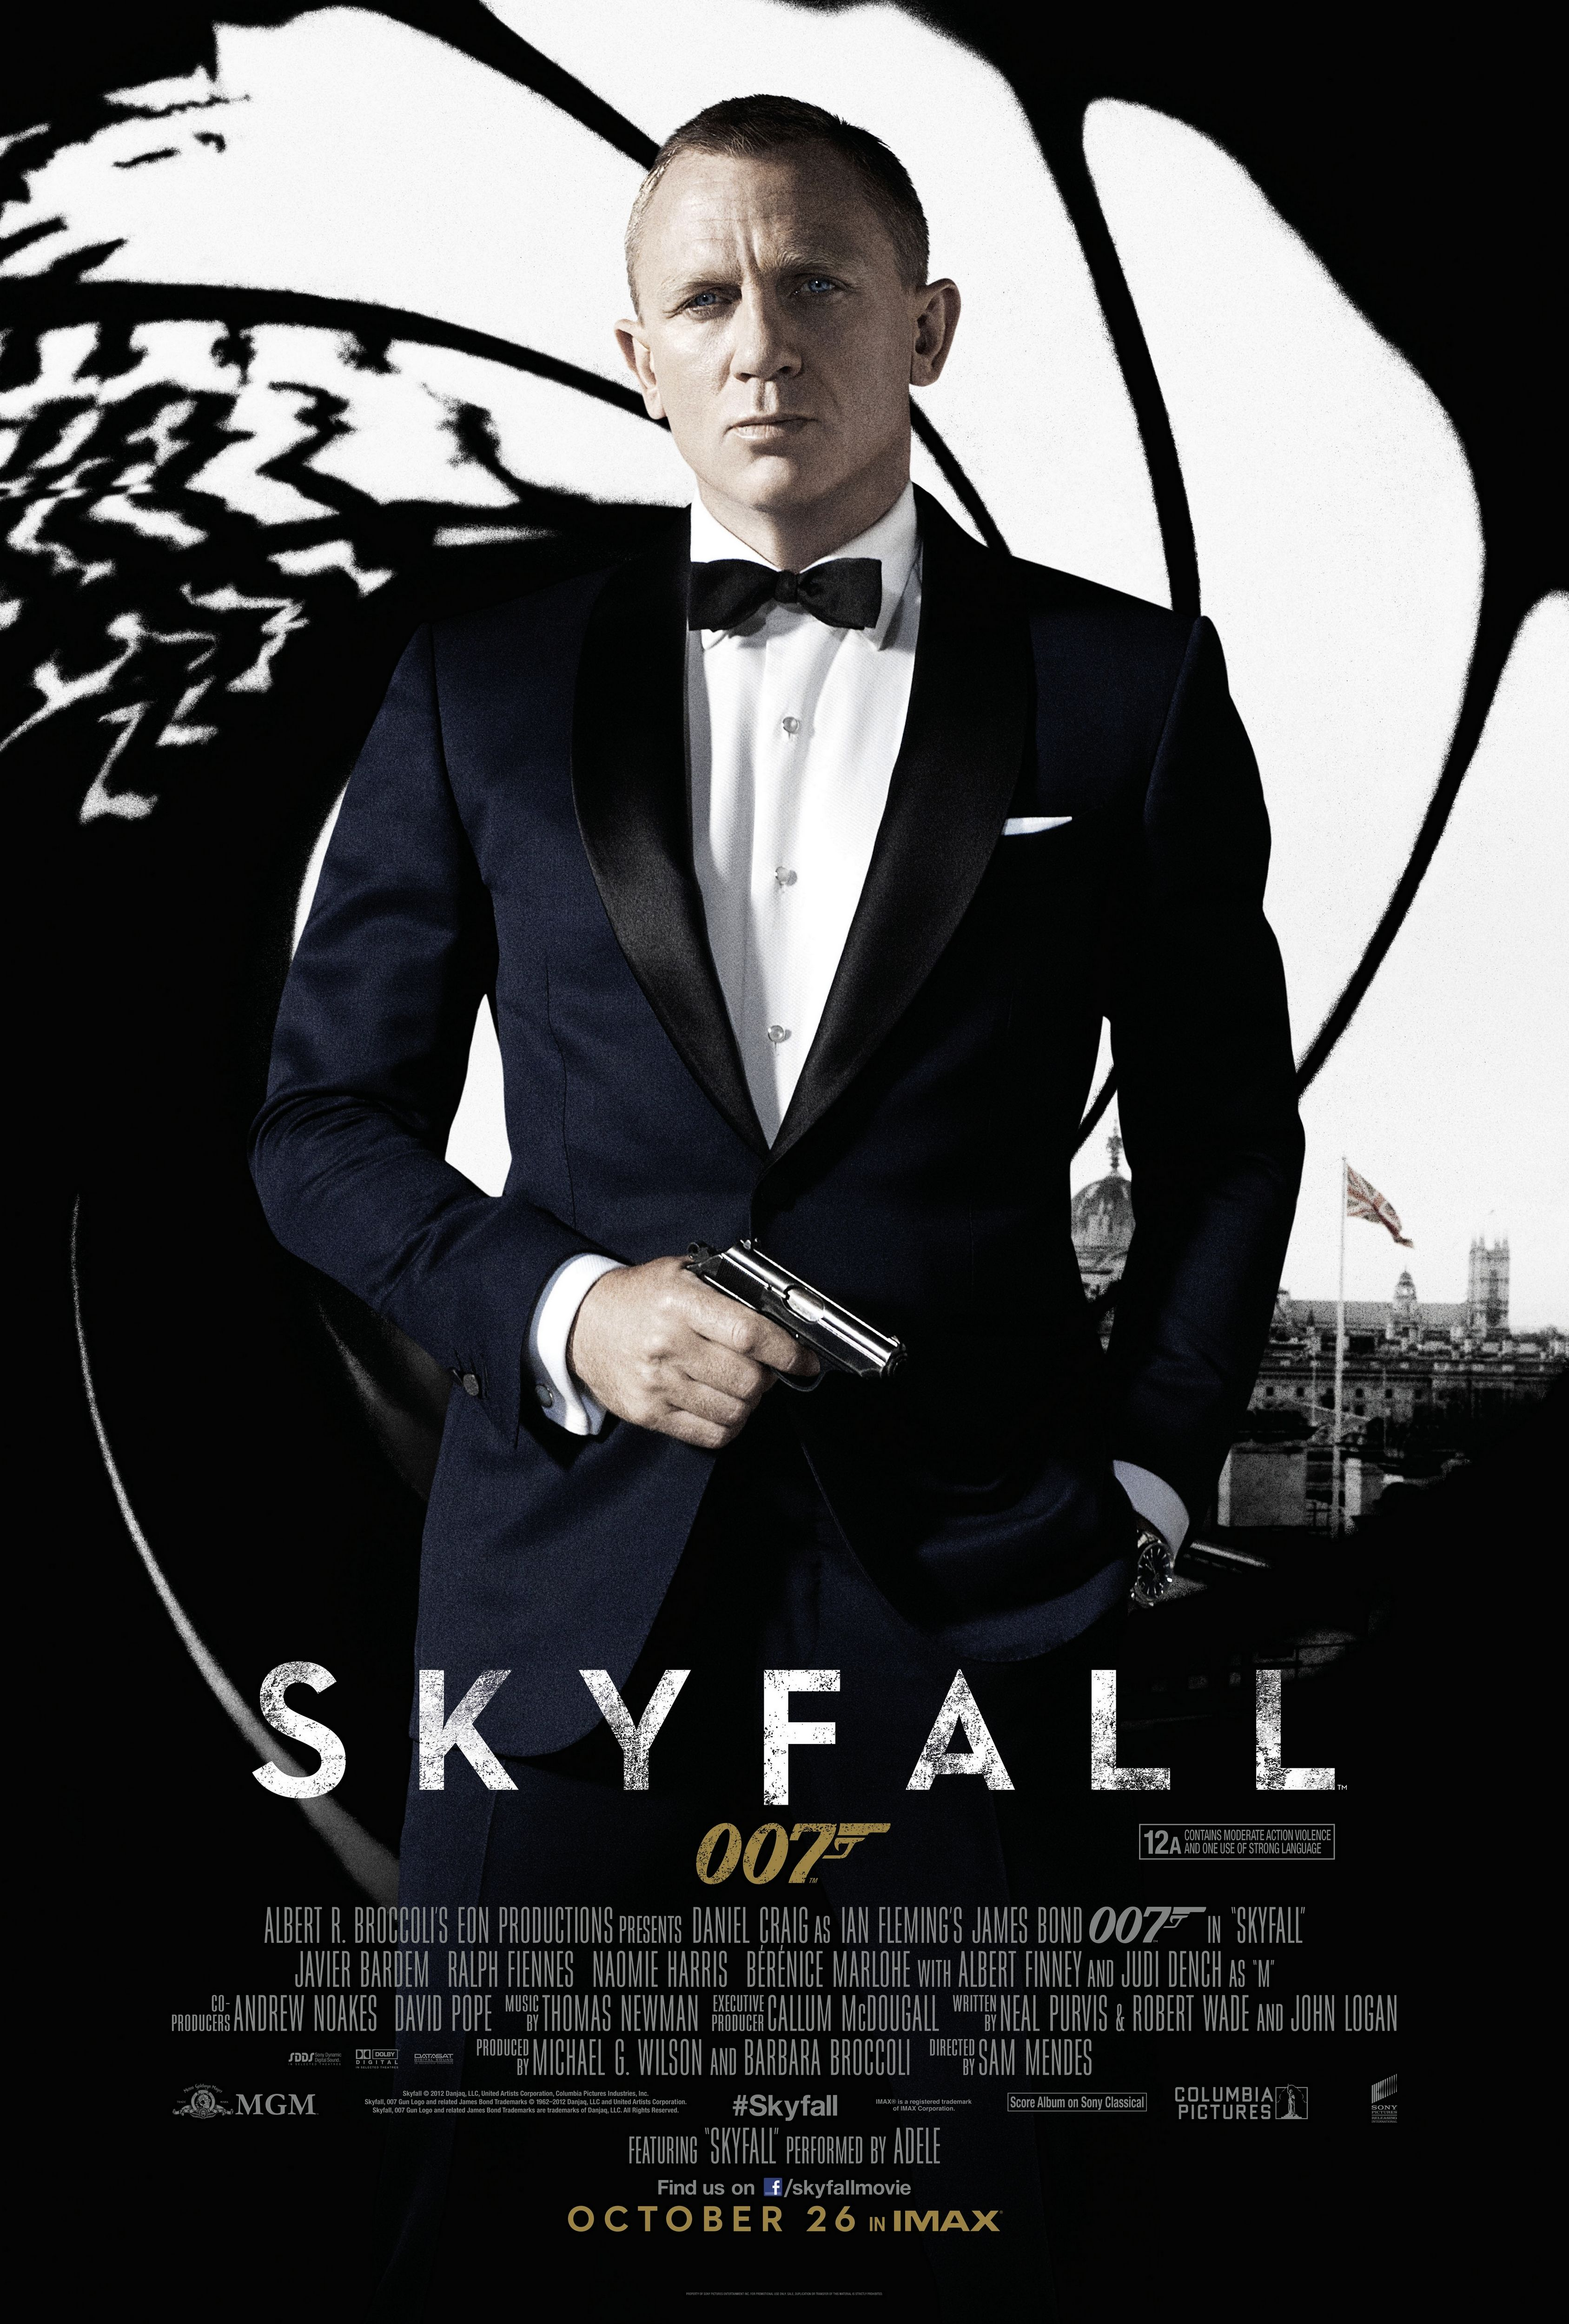 Pin By The Carolina Trader On Movie Posters James Bond Movie Posters James Bond Skyfall James Bond Movies